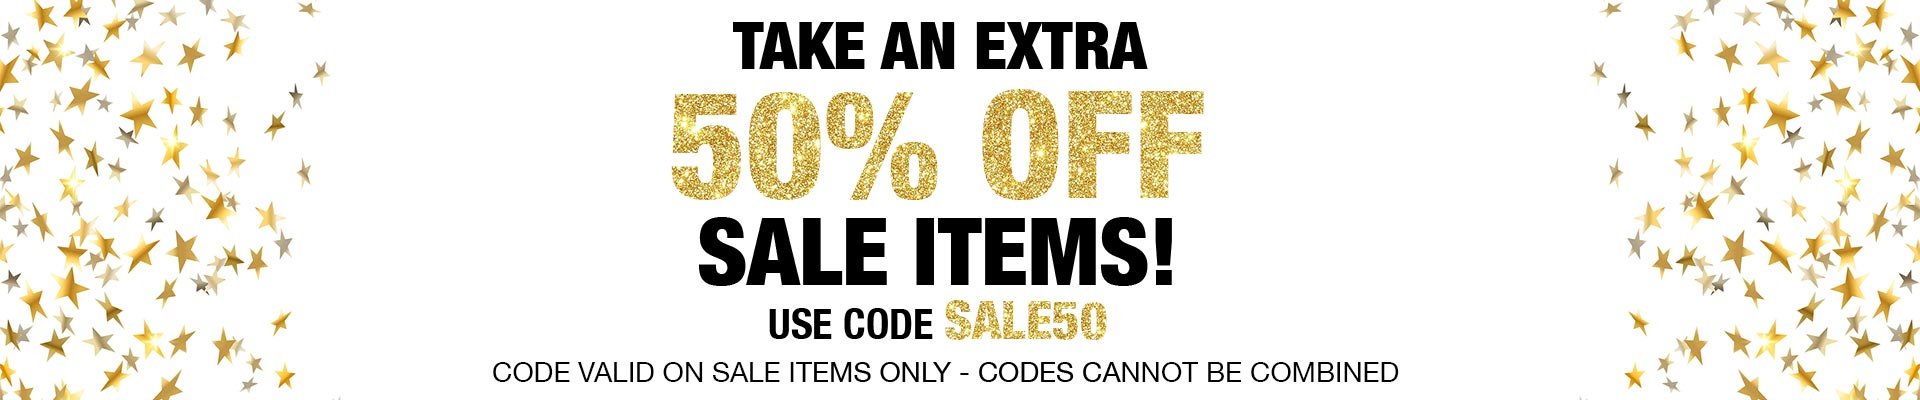 Take an extra 50% Off Sale Items! Use Code SALE50